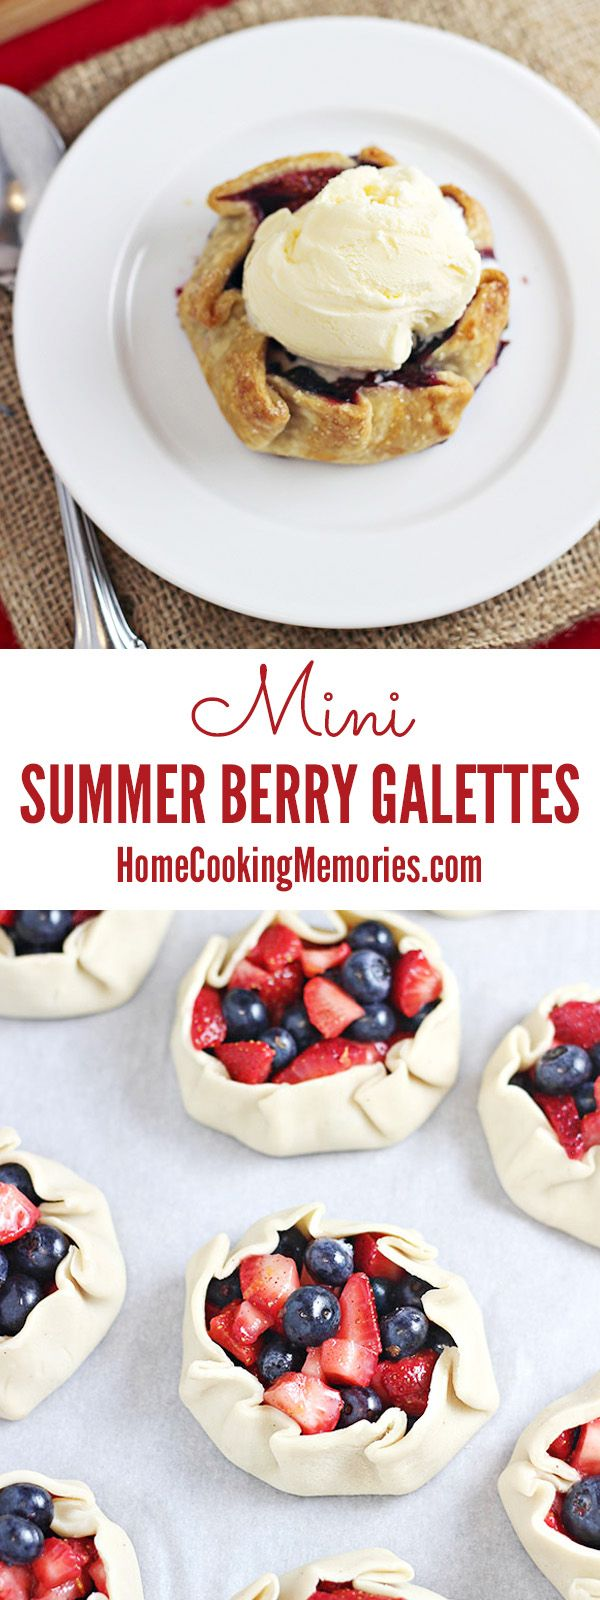 Mini Summer Berry Galettes are like a pie, but so much easier to make! It's a summer dessert that's sure to impress your guests.